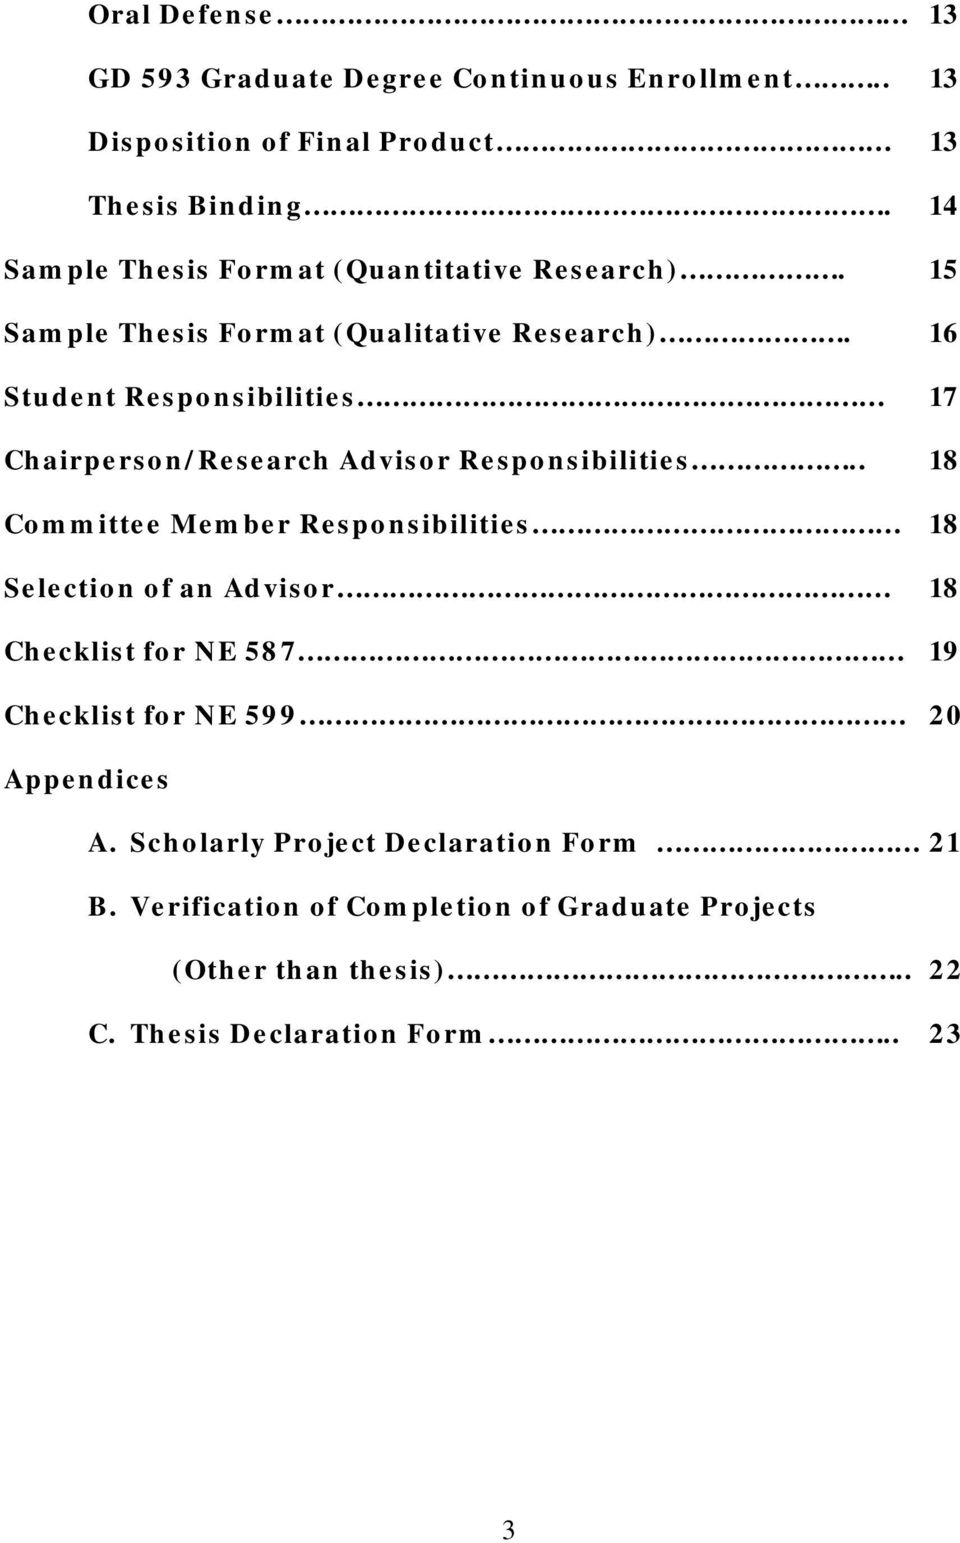 16 Student Responsibilities 17 Chairperson/Research Advisor Responsibilities.